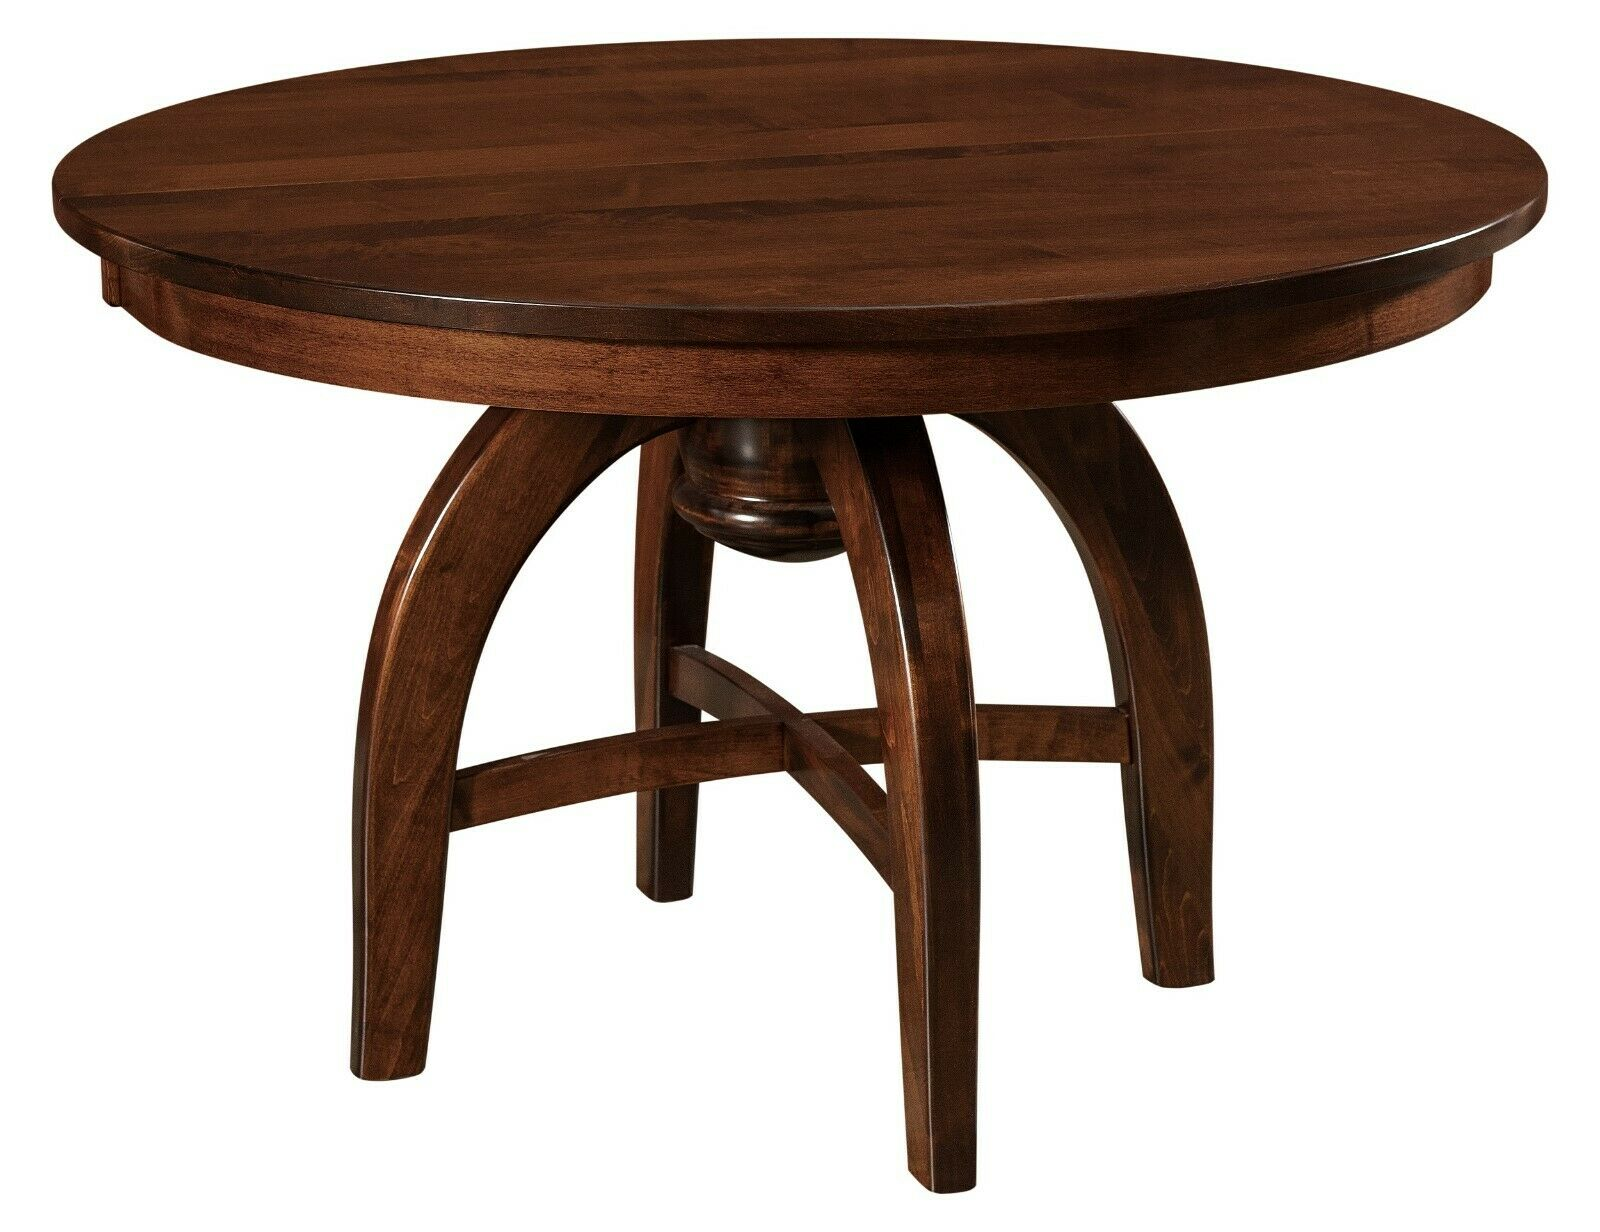 Round Table Drop Leaf Solid Wood 42 Diameter Compact Extra Dining Space Small For Sale Online Ebay